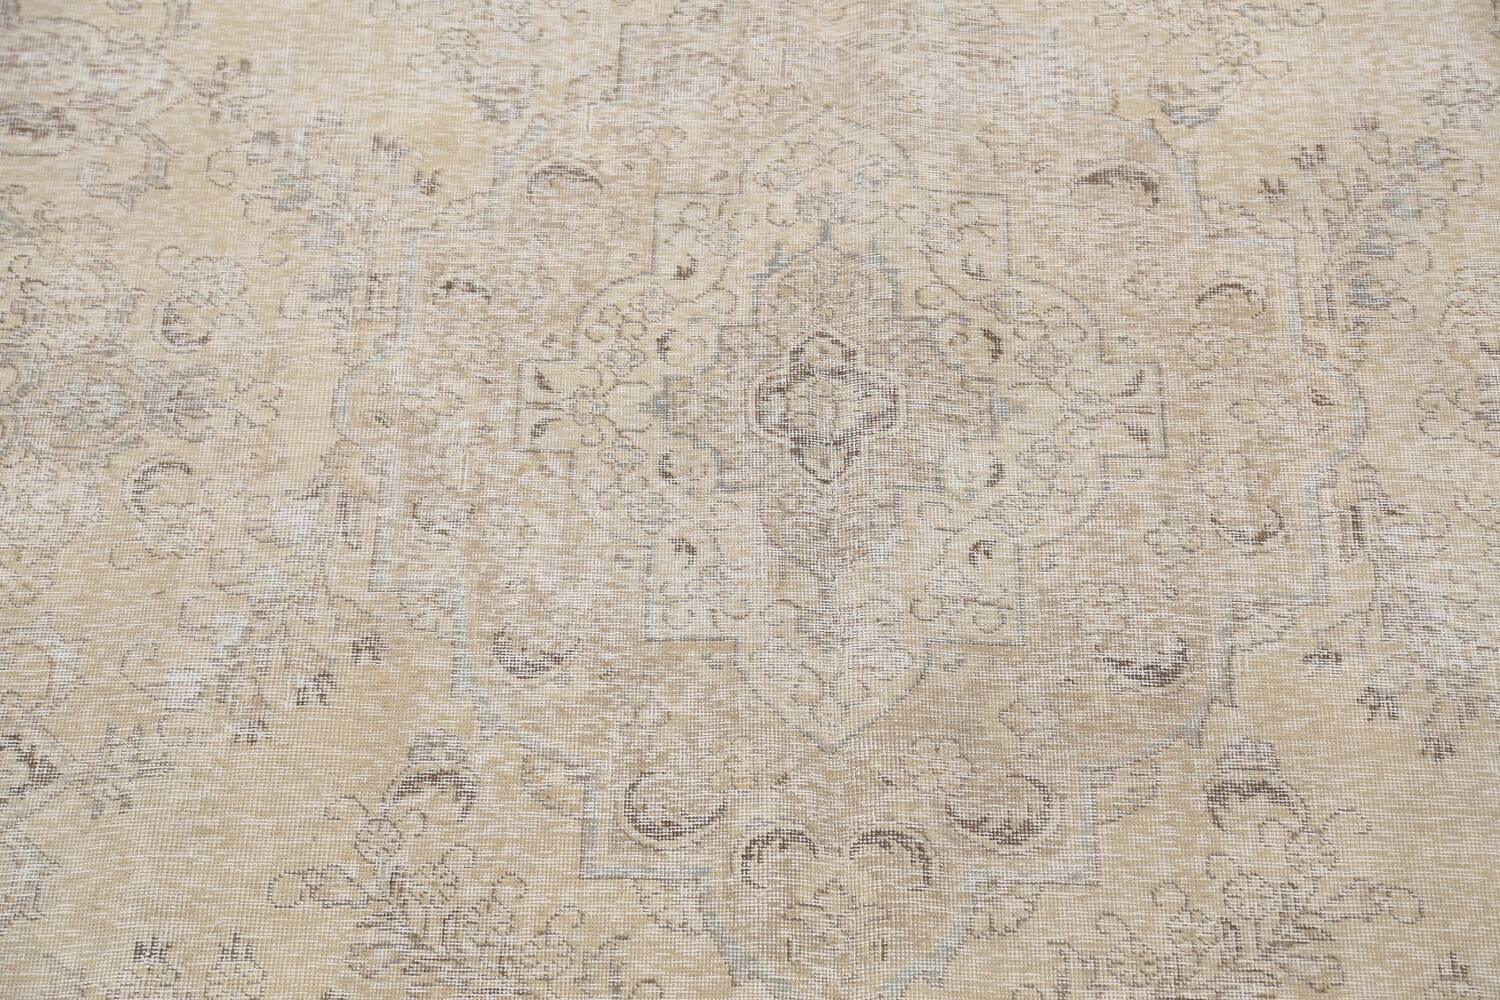 Antique Muted Floral Tabriz Persian Area Rug 9x13 image 4